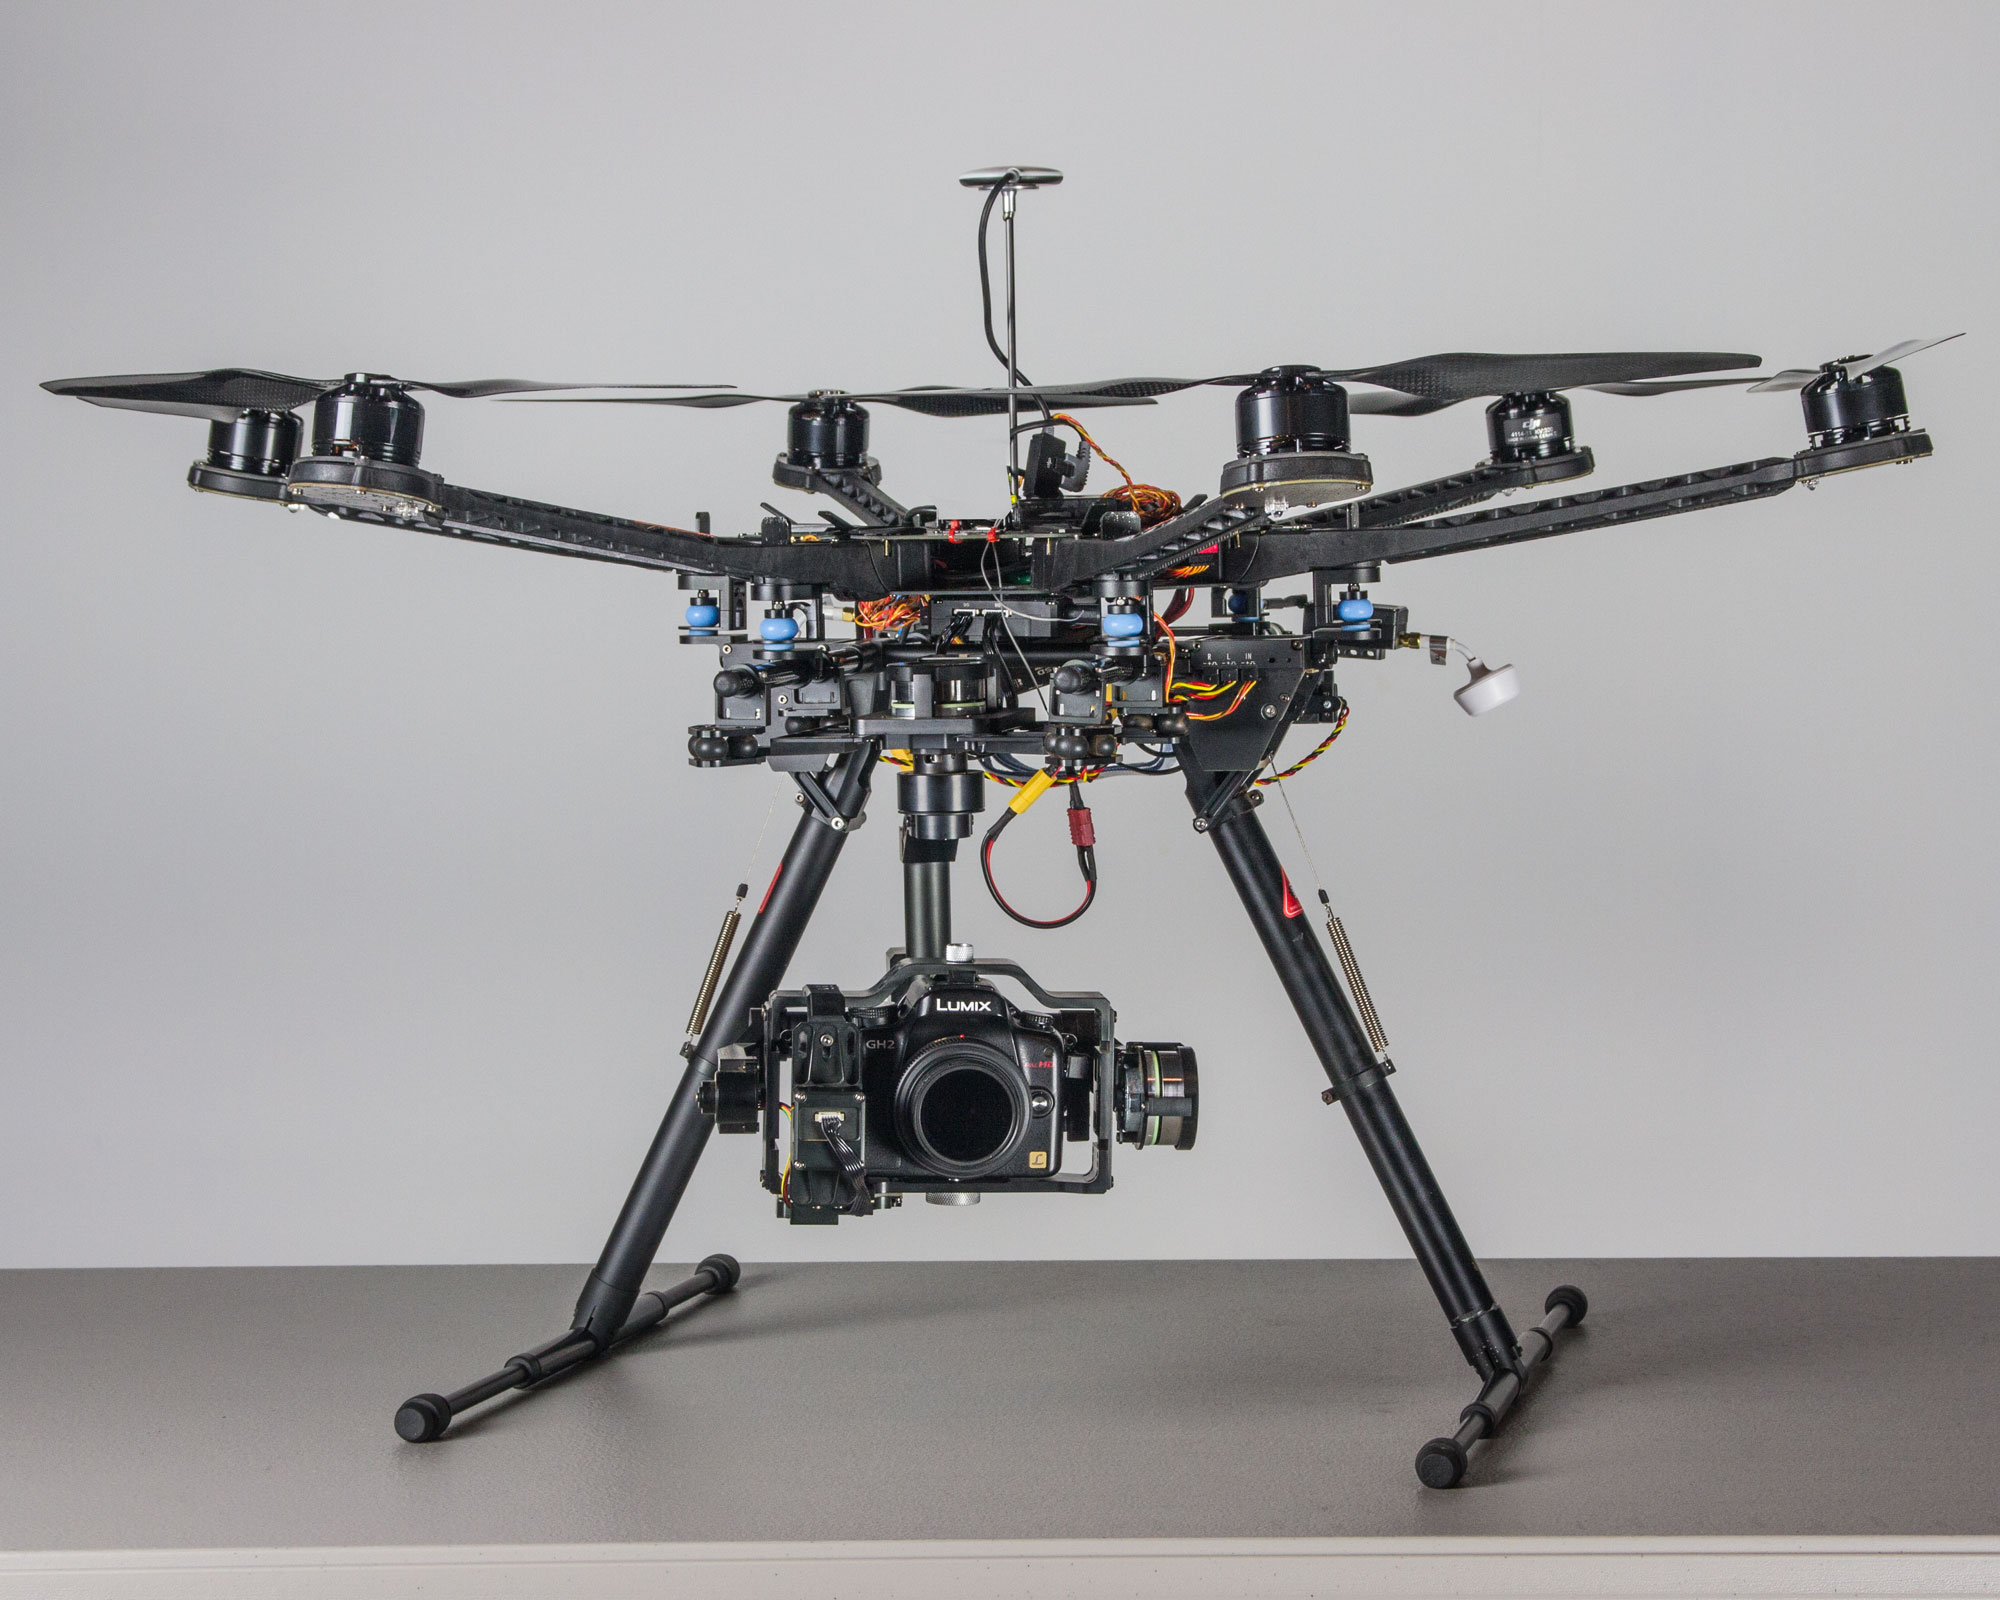 drones sale with Dji S800 Panasonic Camera Full Kit on Pain Is Temporary additionally Dji S800 Panasonic Camera Full Kit likewise Nixie Drone New Wearable Tech Concept Selfies moreover Dji Spark Skin Fc Camo together with Israeli Military Veterans Built A Sniper Drone.